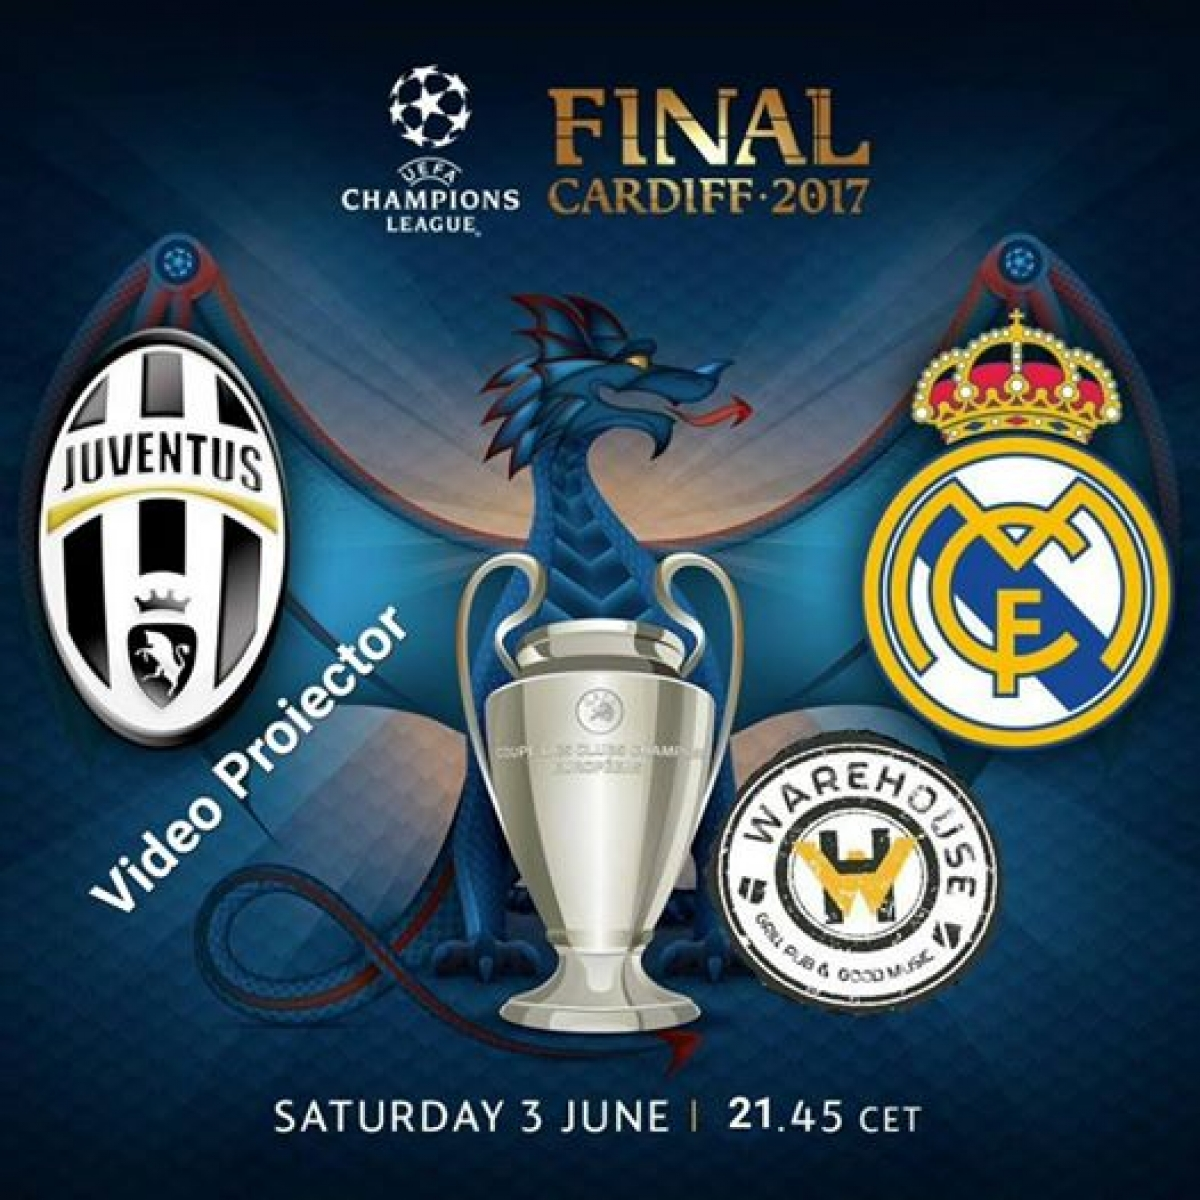 Finala Uefa Champions League//Juventus vs Real Madrid